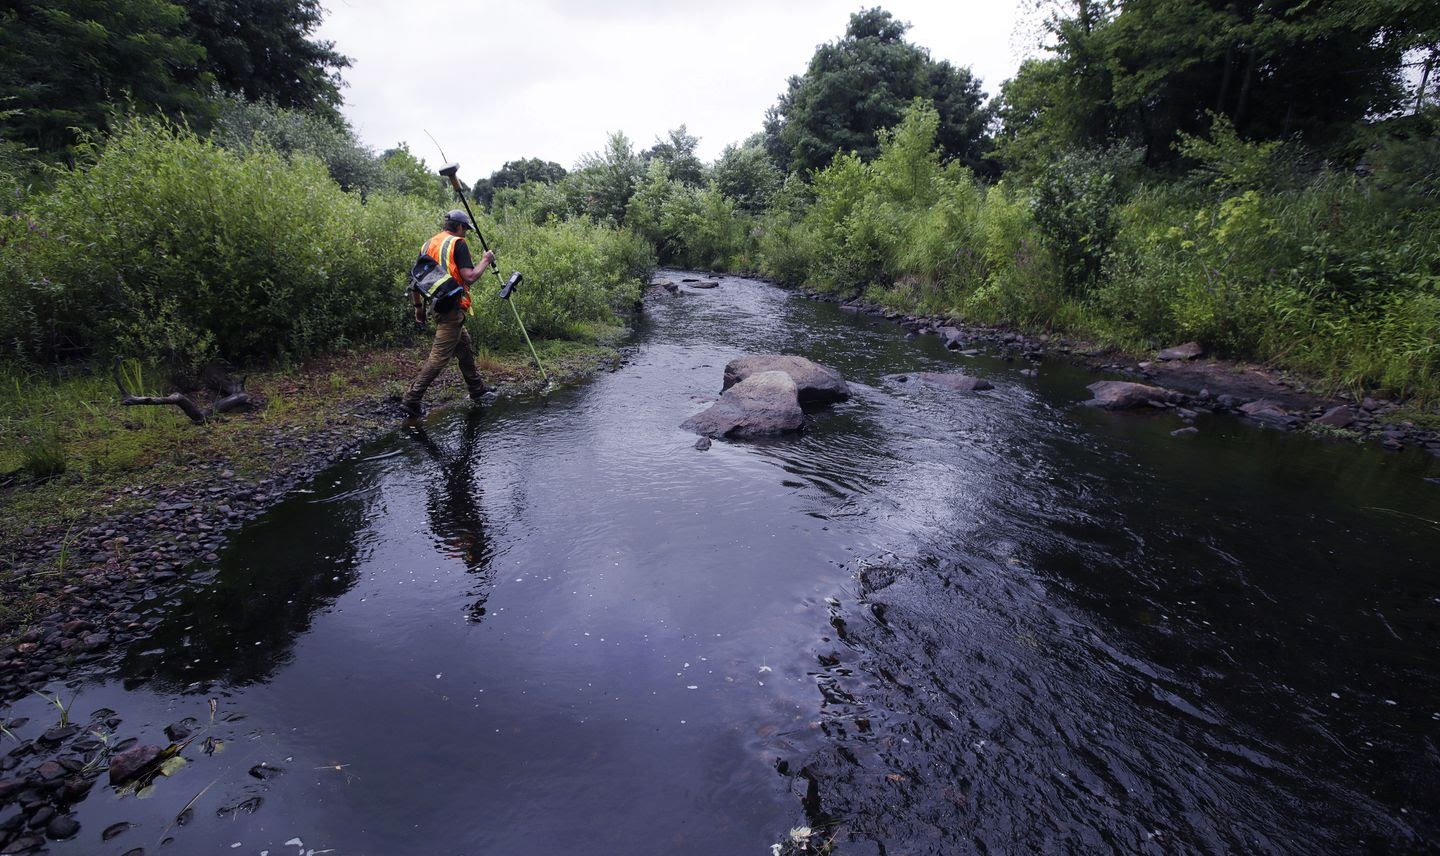 A surveyor walks the banks of the Mill River, at the site of the former Whittenton Pond Dam, just upstream from downtown Taunton, Mass., July 25, 2018.